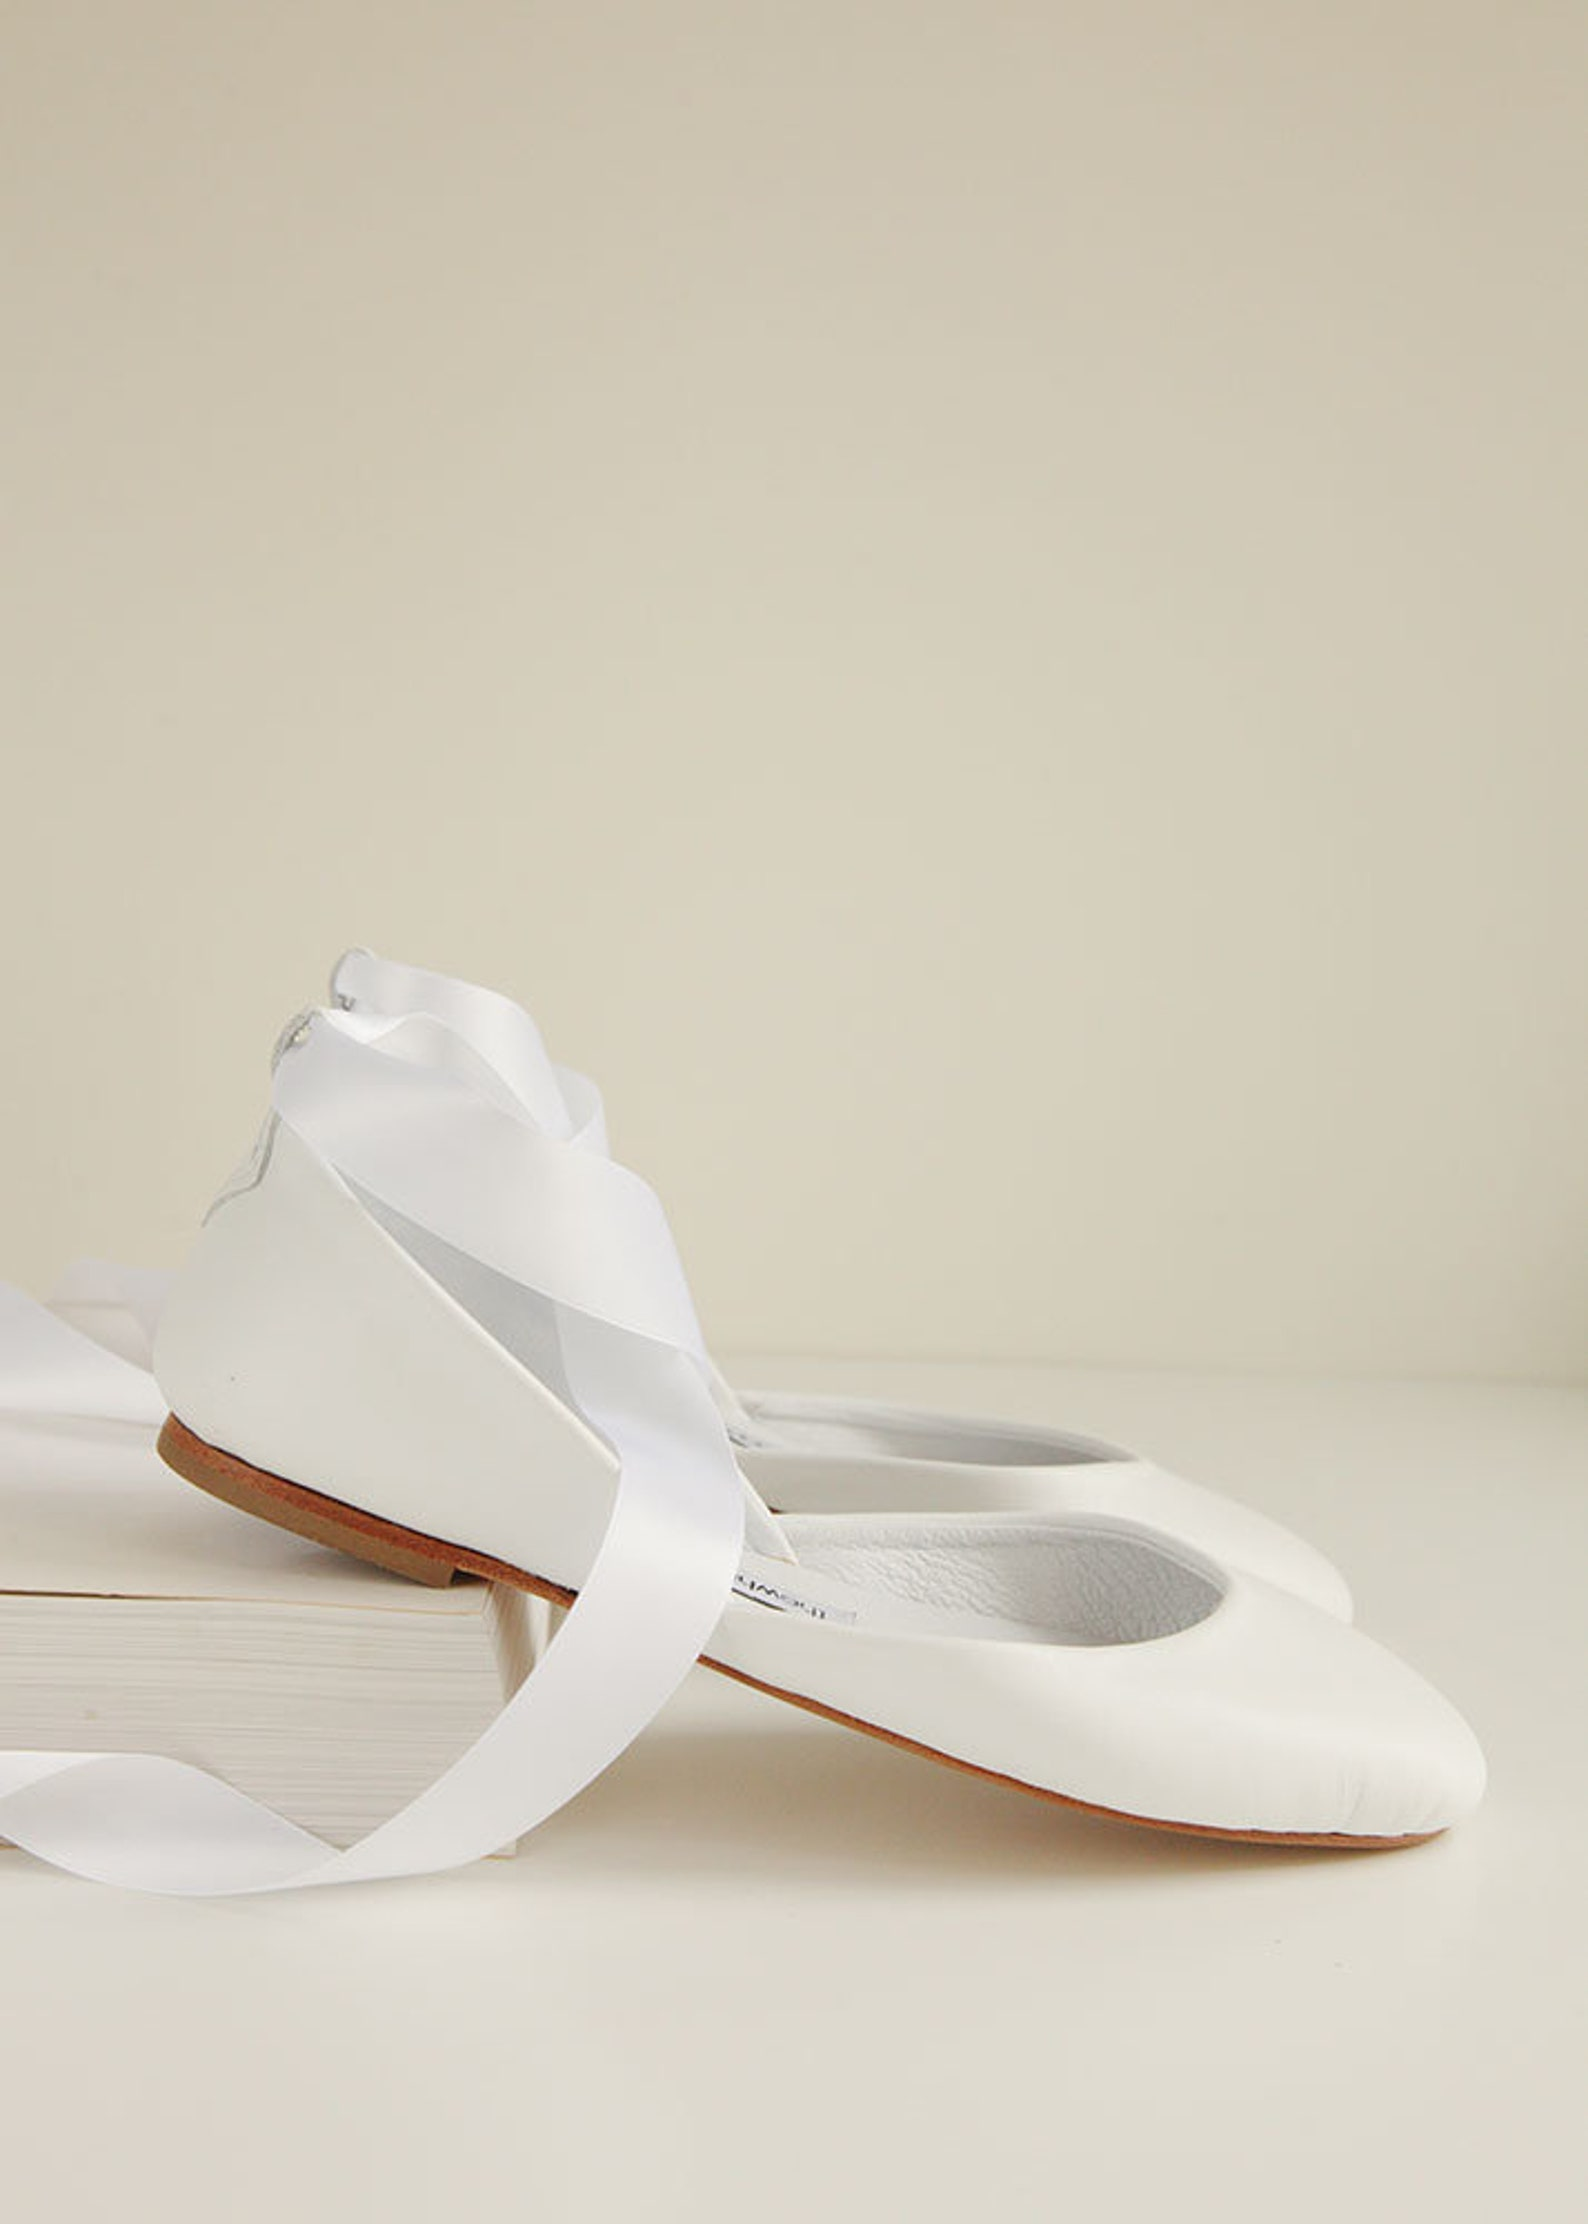 the wedding shoes | custom bridal ballet flats | ivory white pearl bridal shoes | satin and french lace | made to order